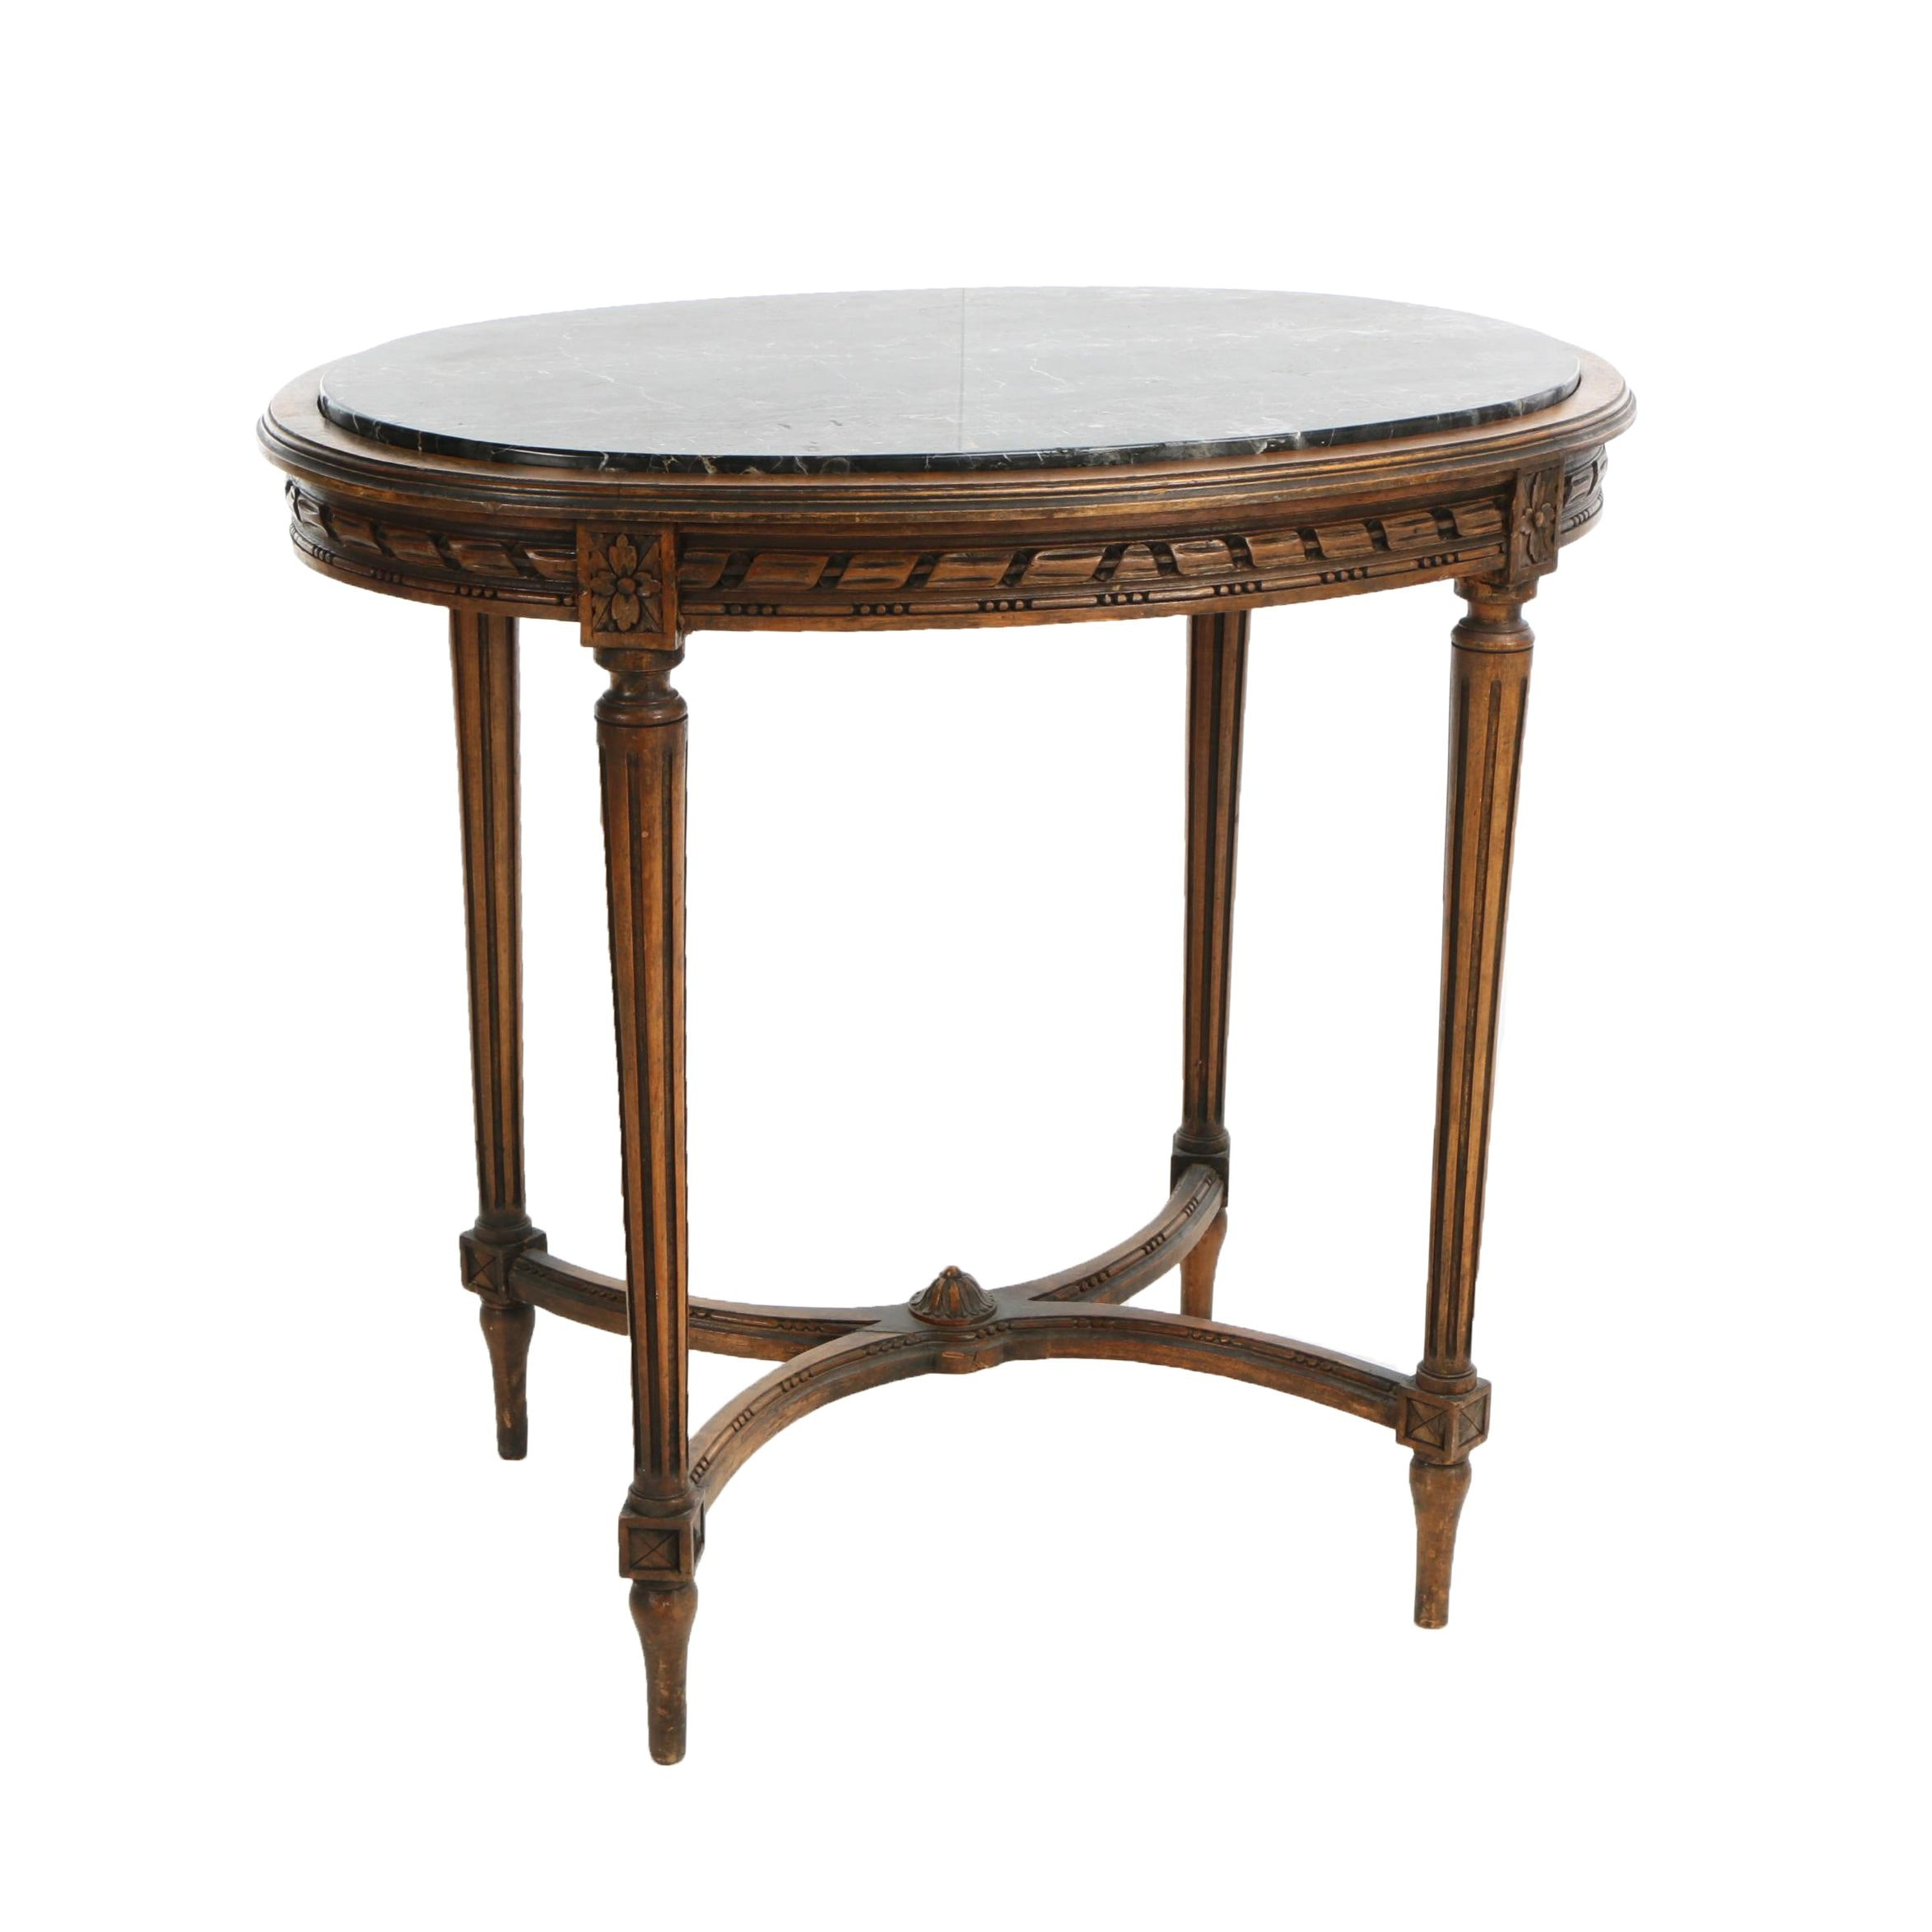 Lightolier of New York, Louis XVI Style Carved Walnut and Black Marble Gueridon